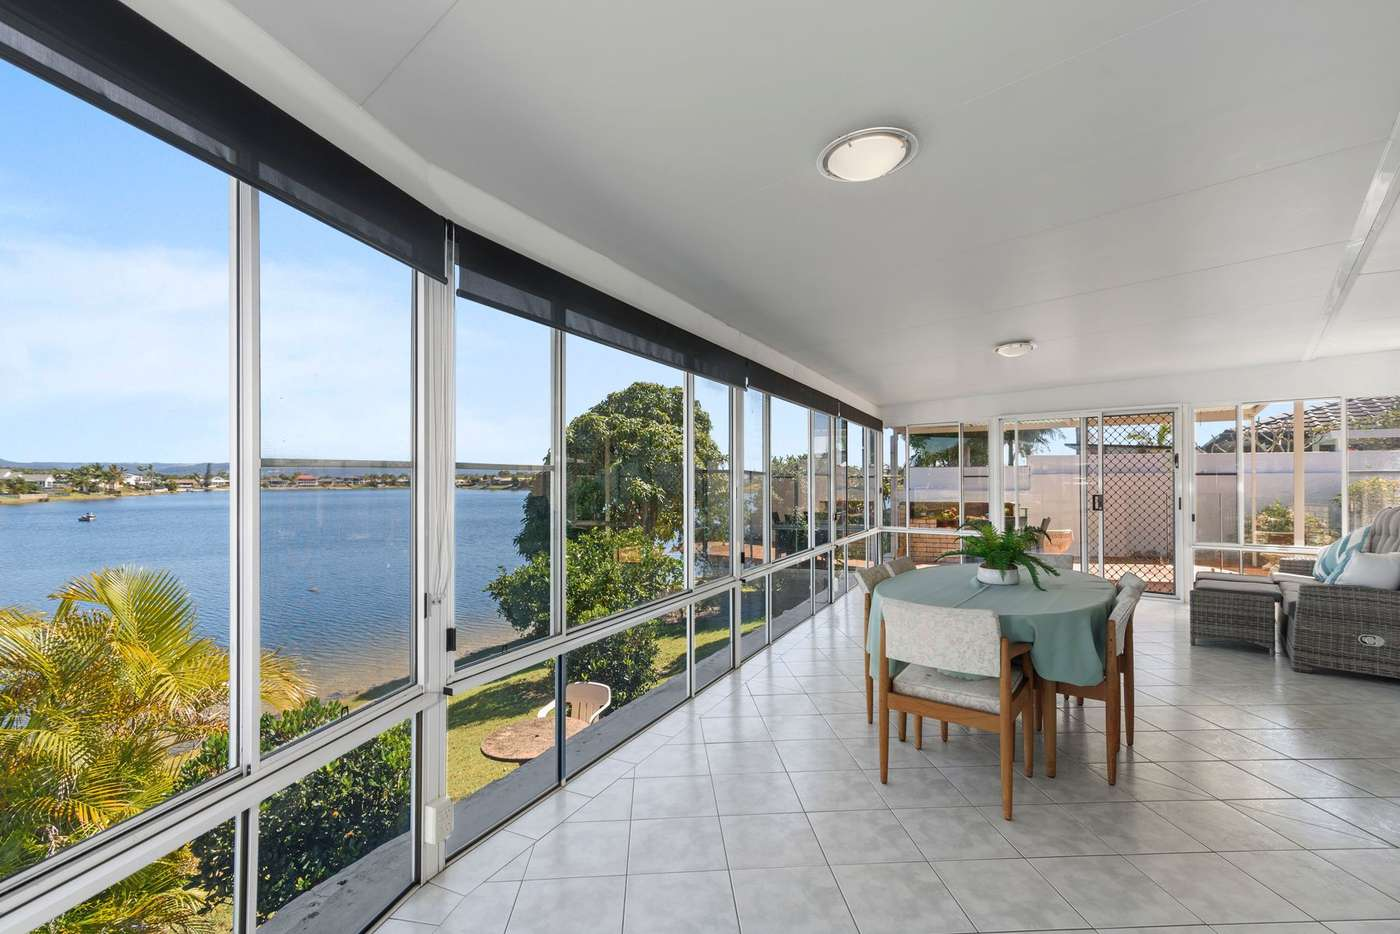 Fifth view of Homely house listing, 43 Pintail Crescent, Burleigh Waters QLD 4220